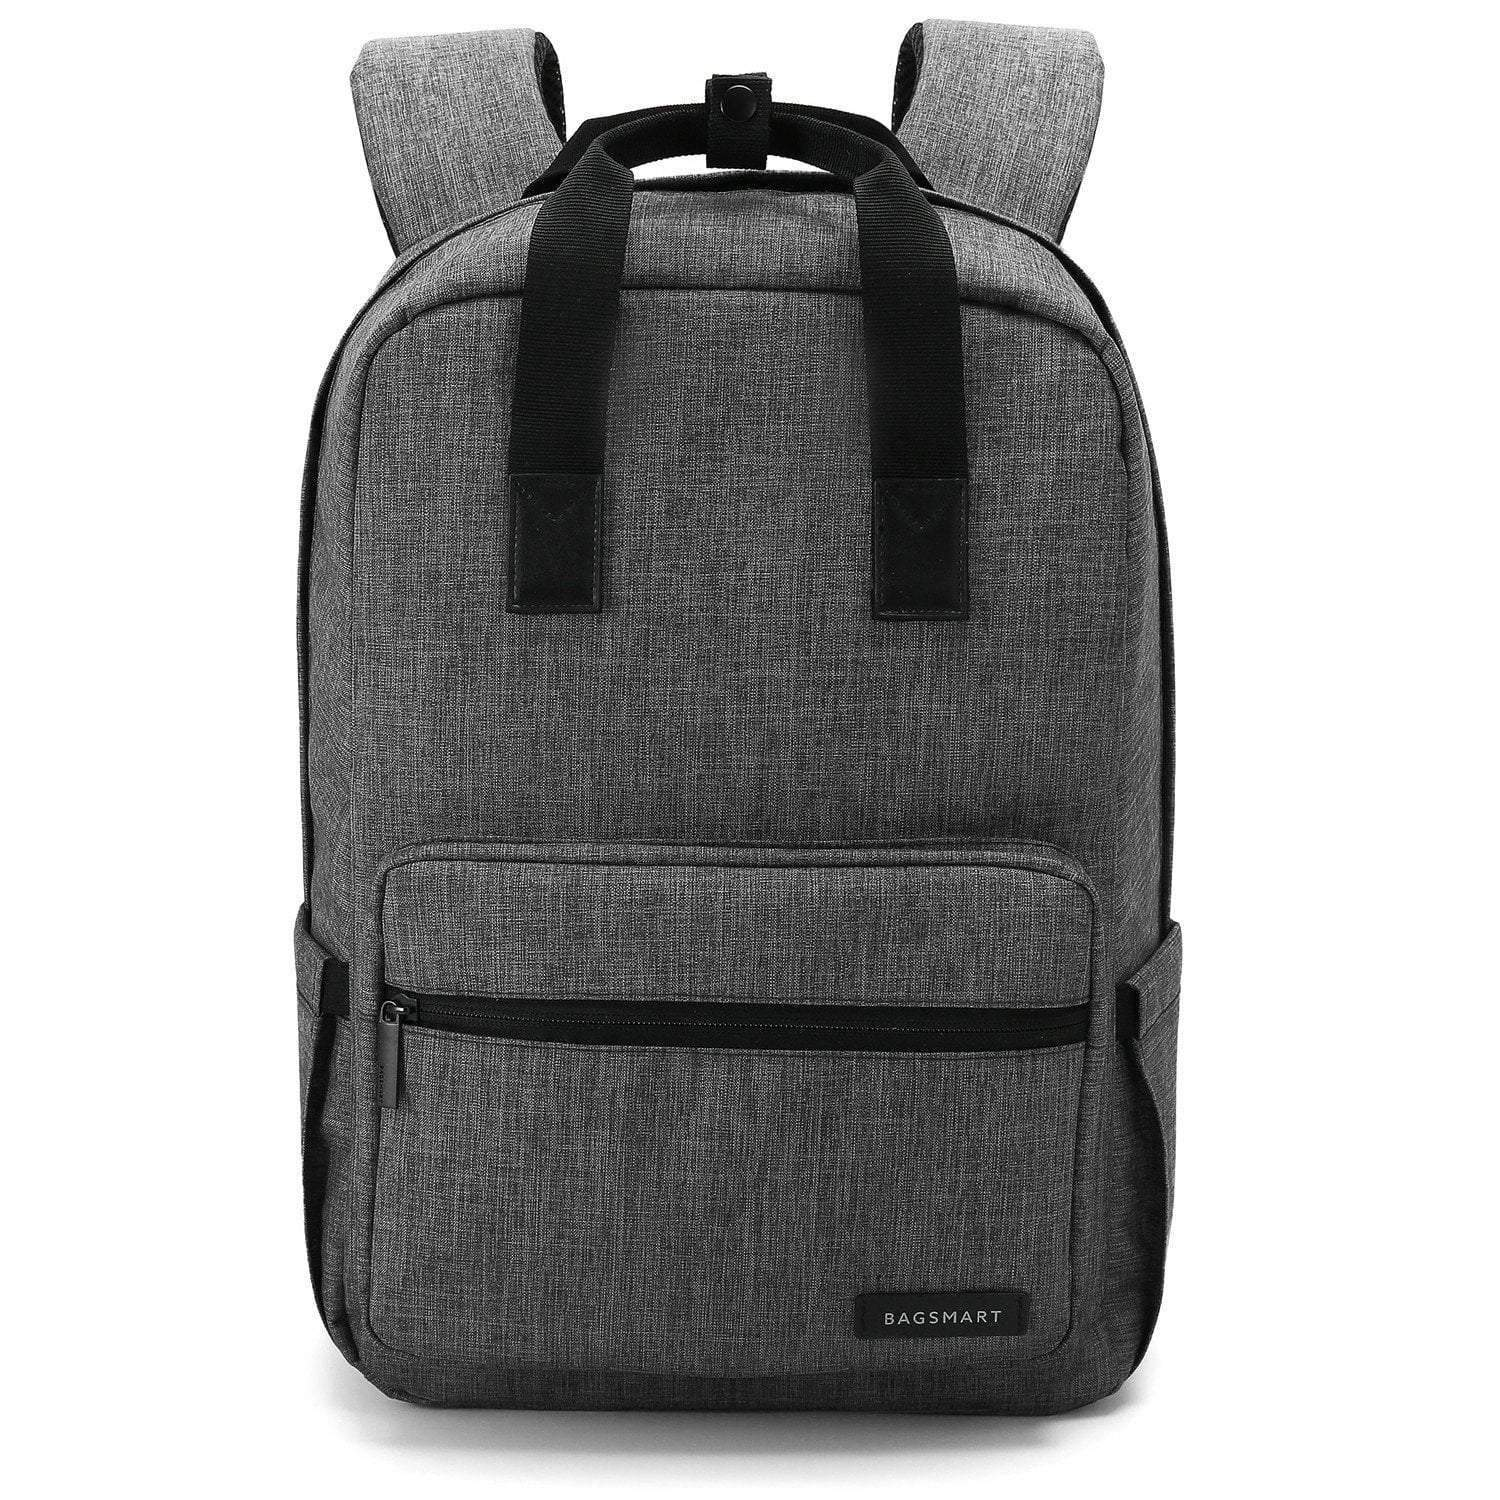 Water Resistant Laptop Backpack - Dgitrends